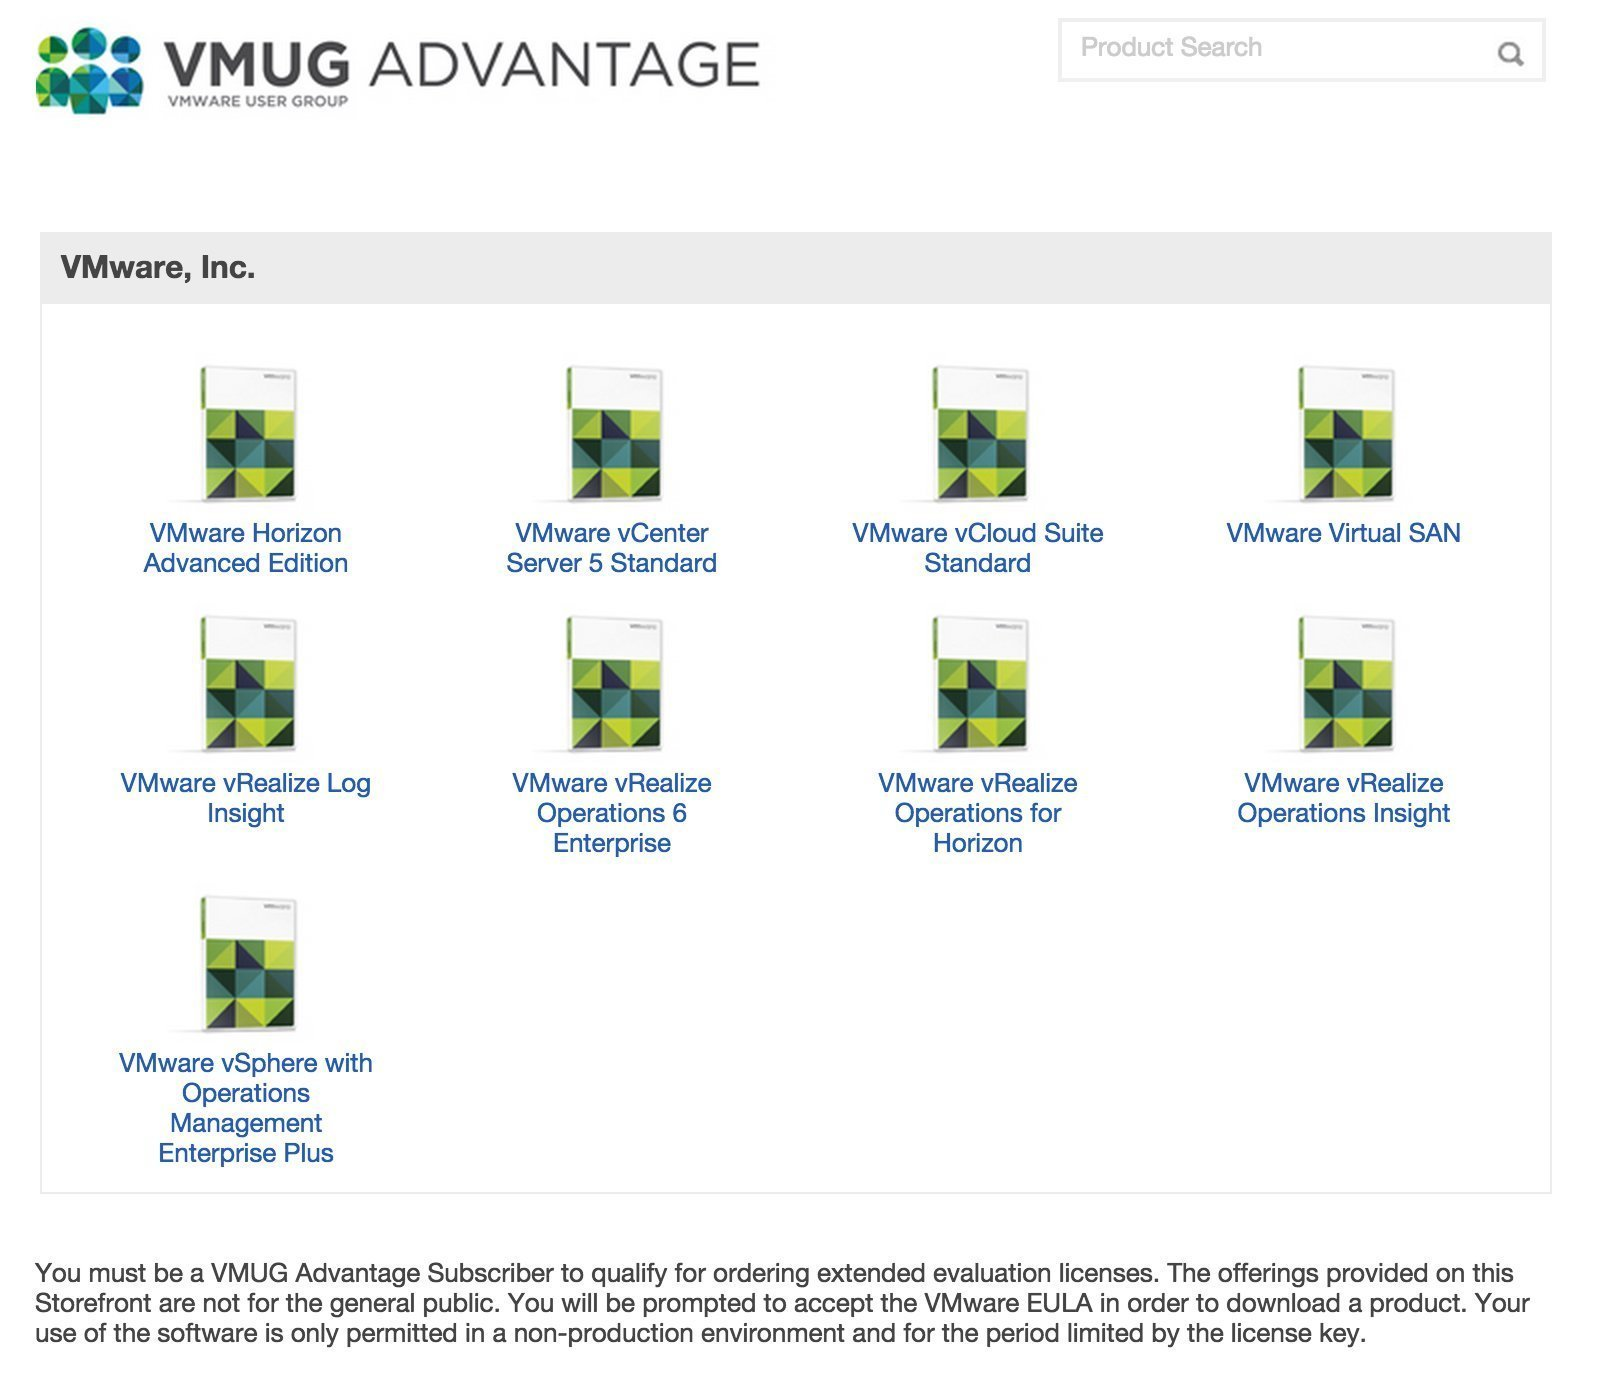 VMUG EVALExperience products